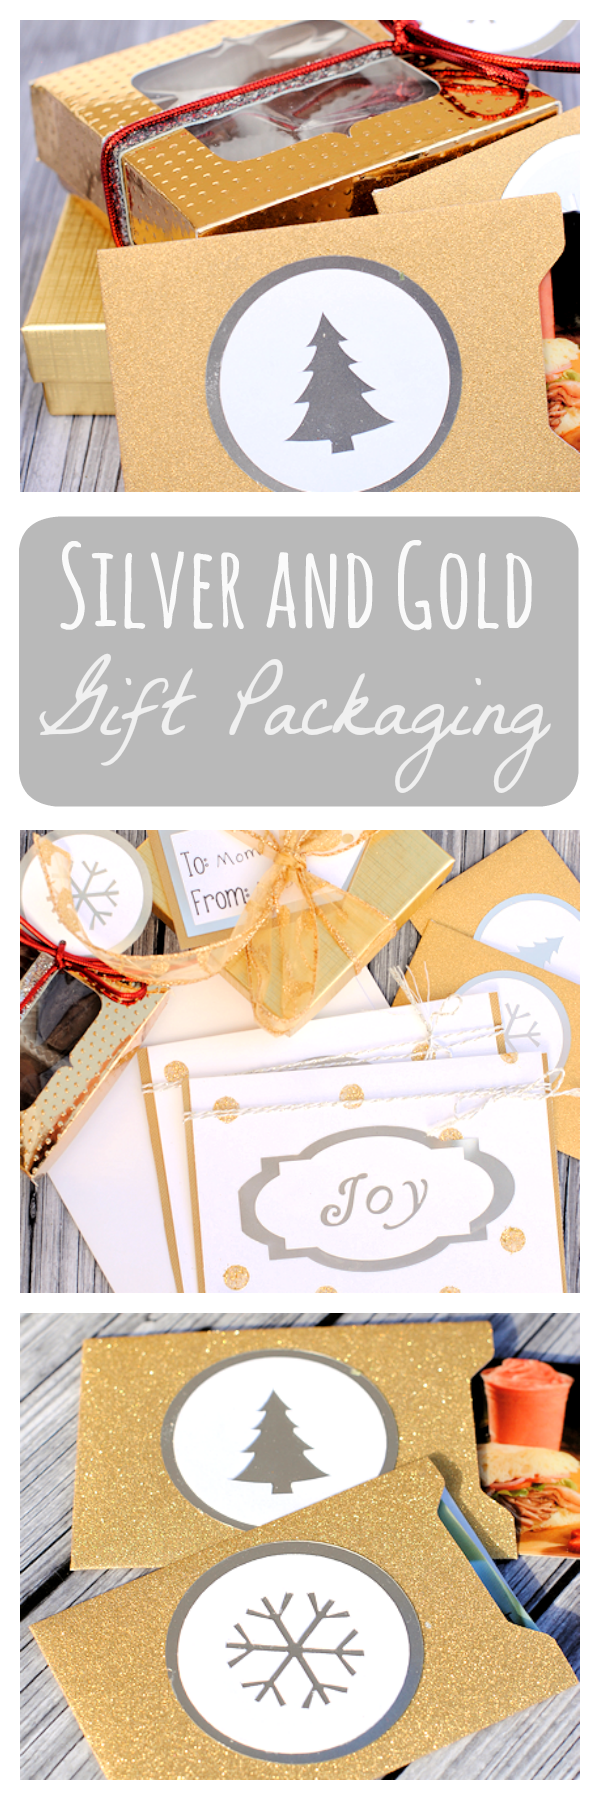 Beautiful Holiday Gift Packaging Ideas and Templates: Gift Card Holders, Tags, Cards and Gift Boxes